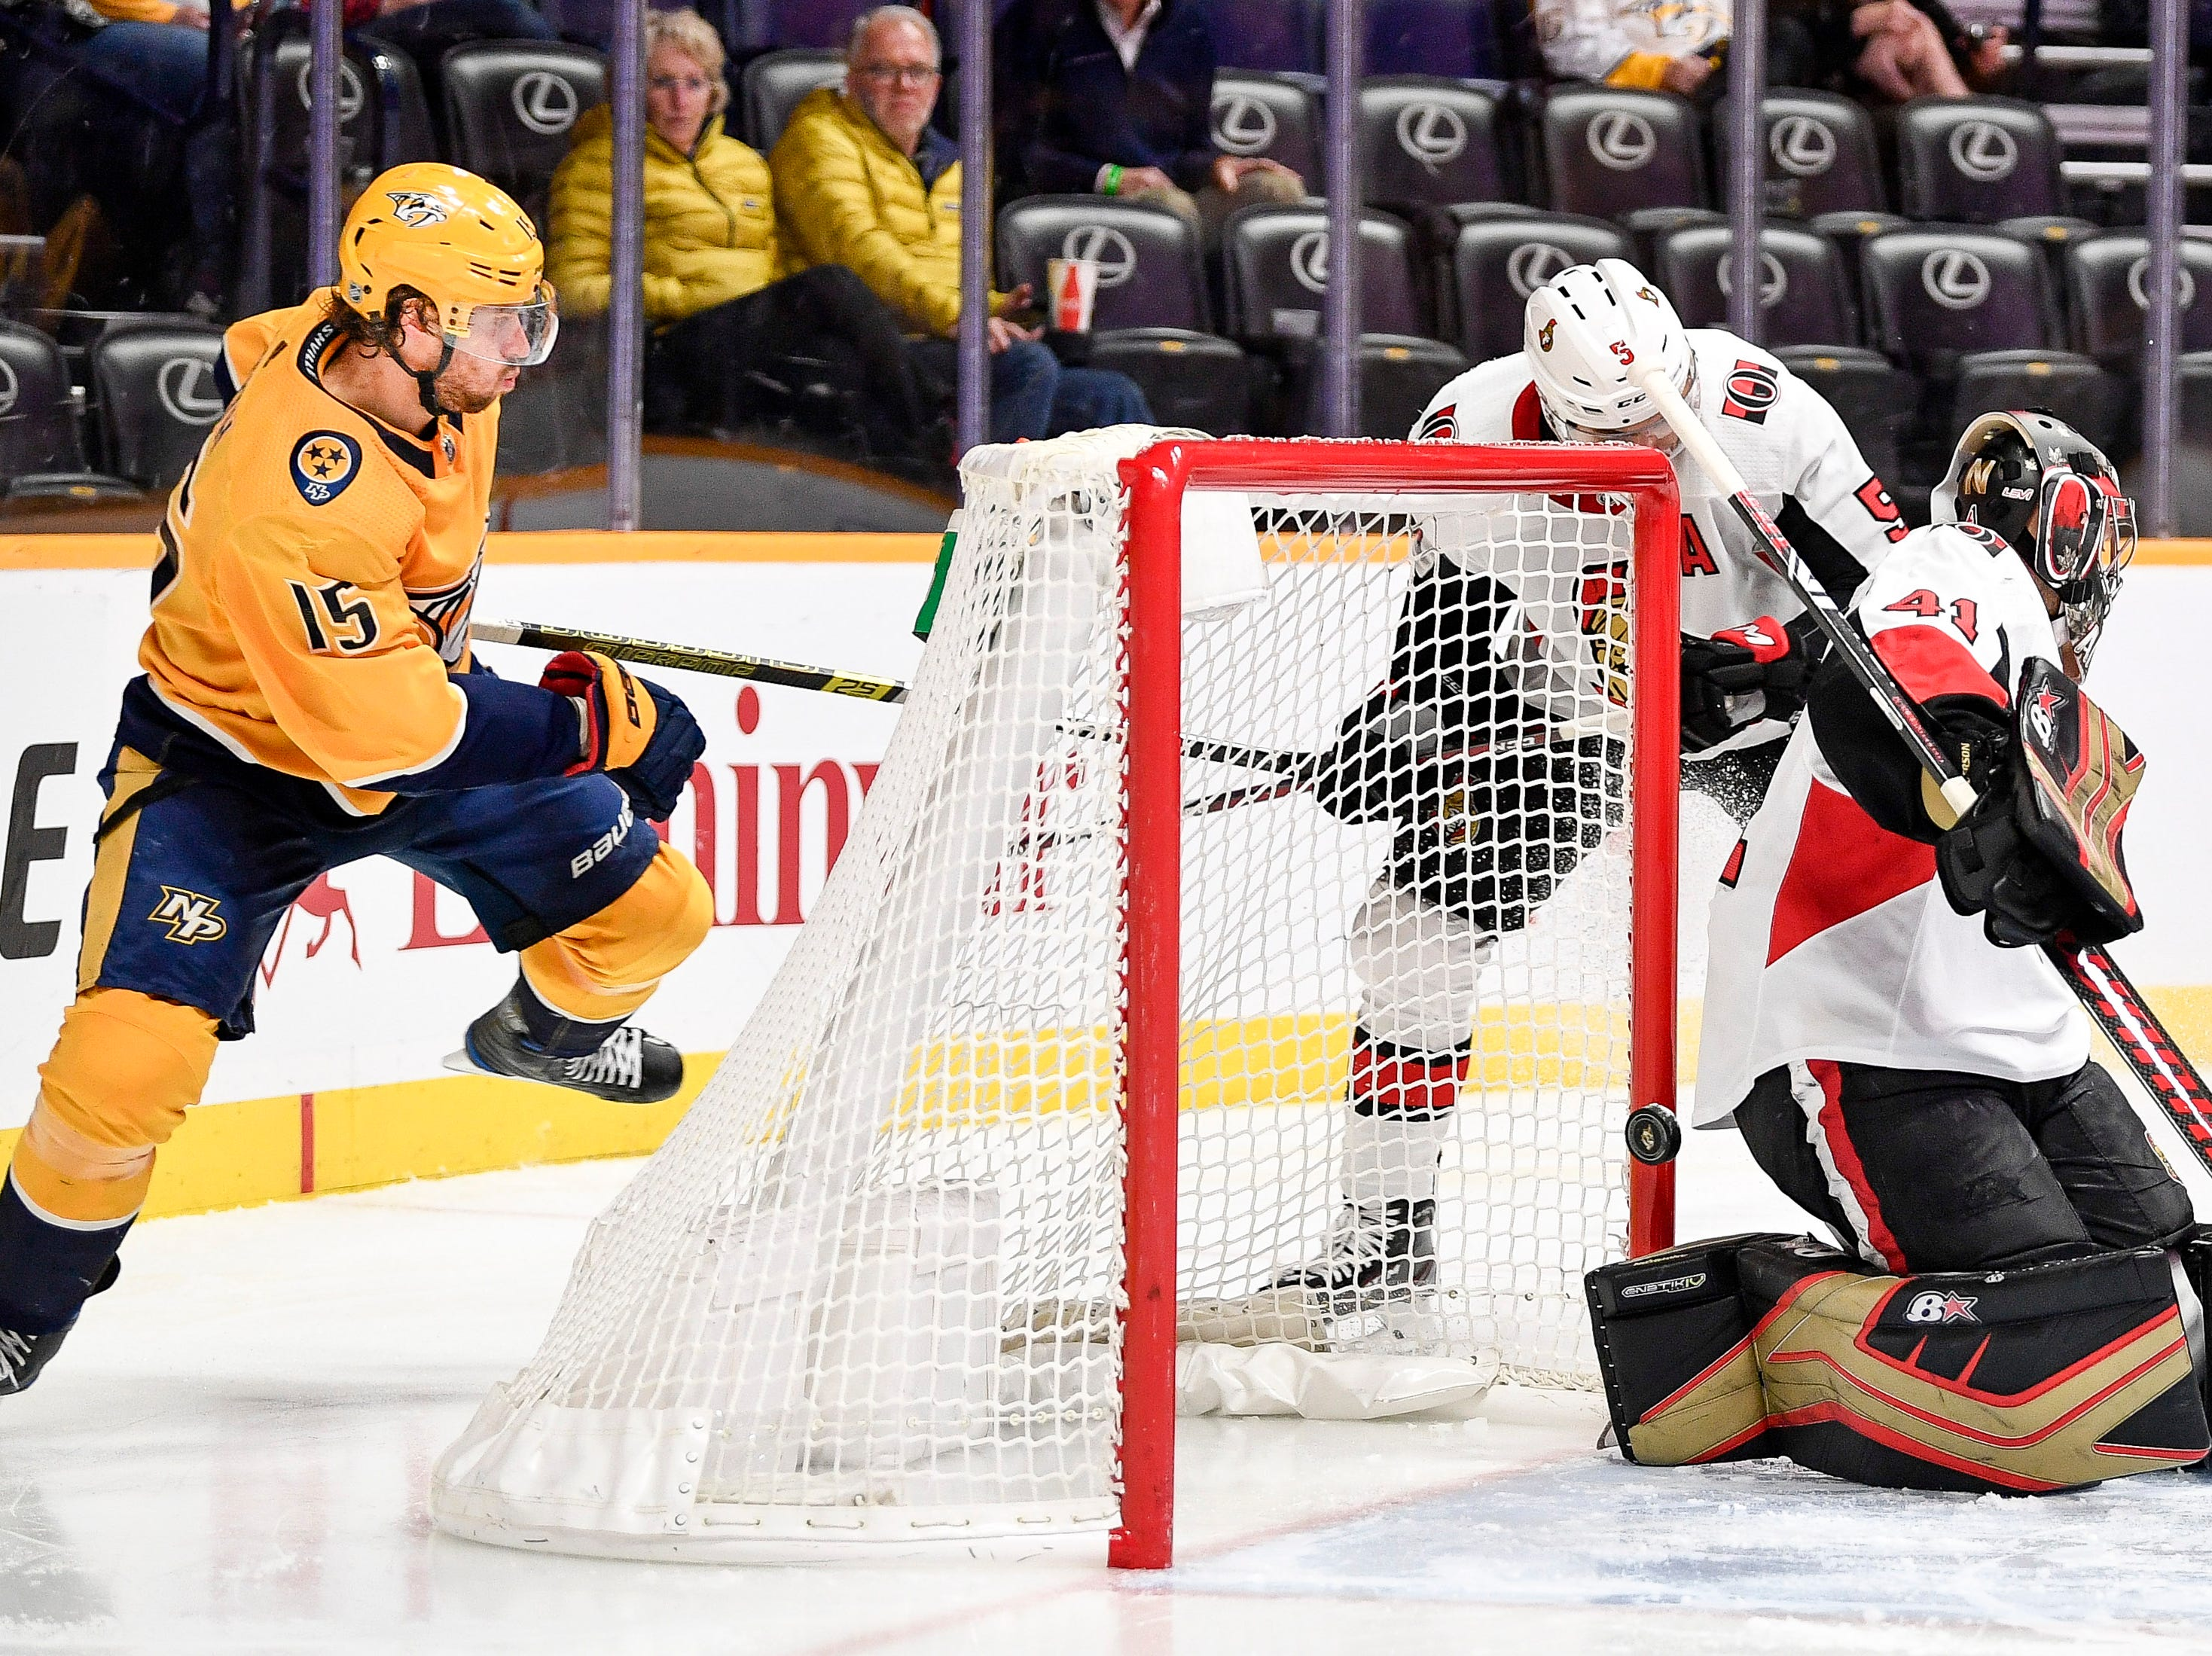 Nashville Predators right wing Craig Smith (15) scores against Ottawa Senators goaltender Craig Anderson (41) during the third period at Bridgestone Arena in Nashville, Tenn., Tuesday, Dec. 11, 2018.